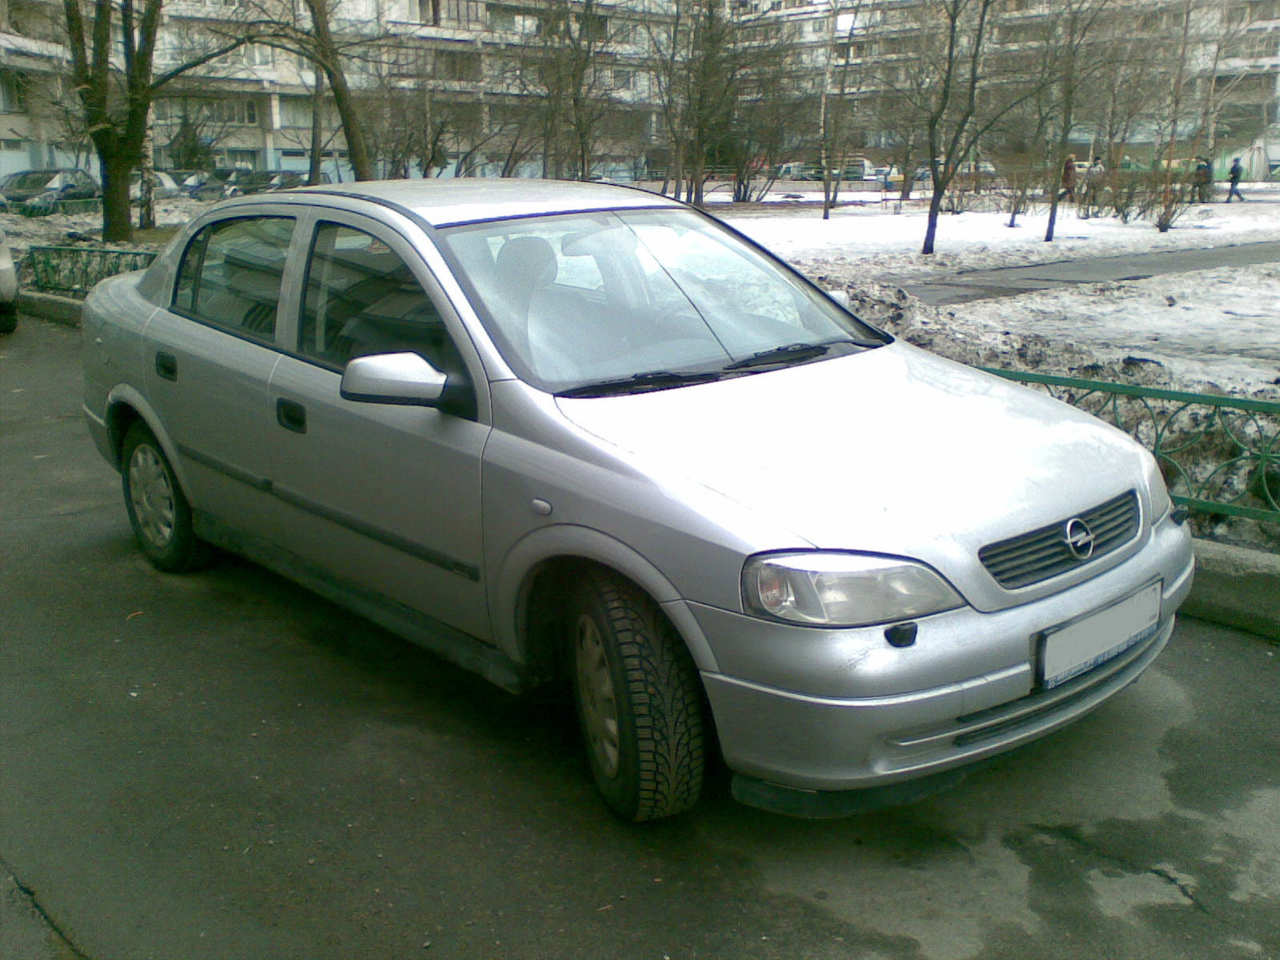 1999 opel astra photos 1 6 gasoline ff automatic for sale. Black Bedroom Furniture Sets. Home Design Ideas